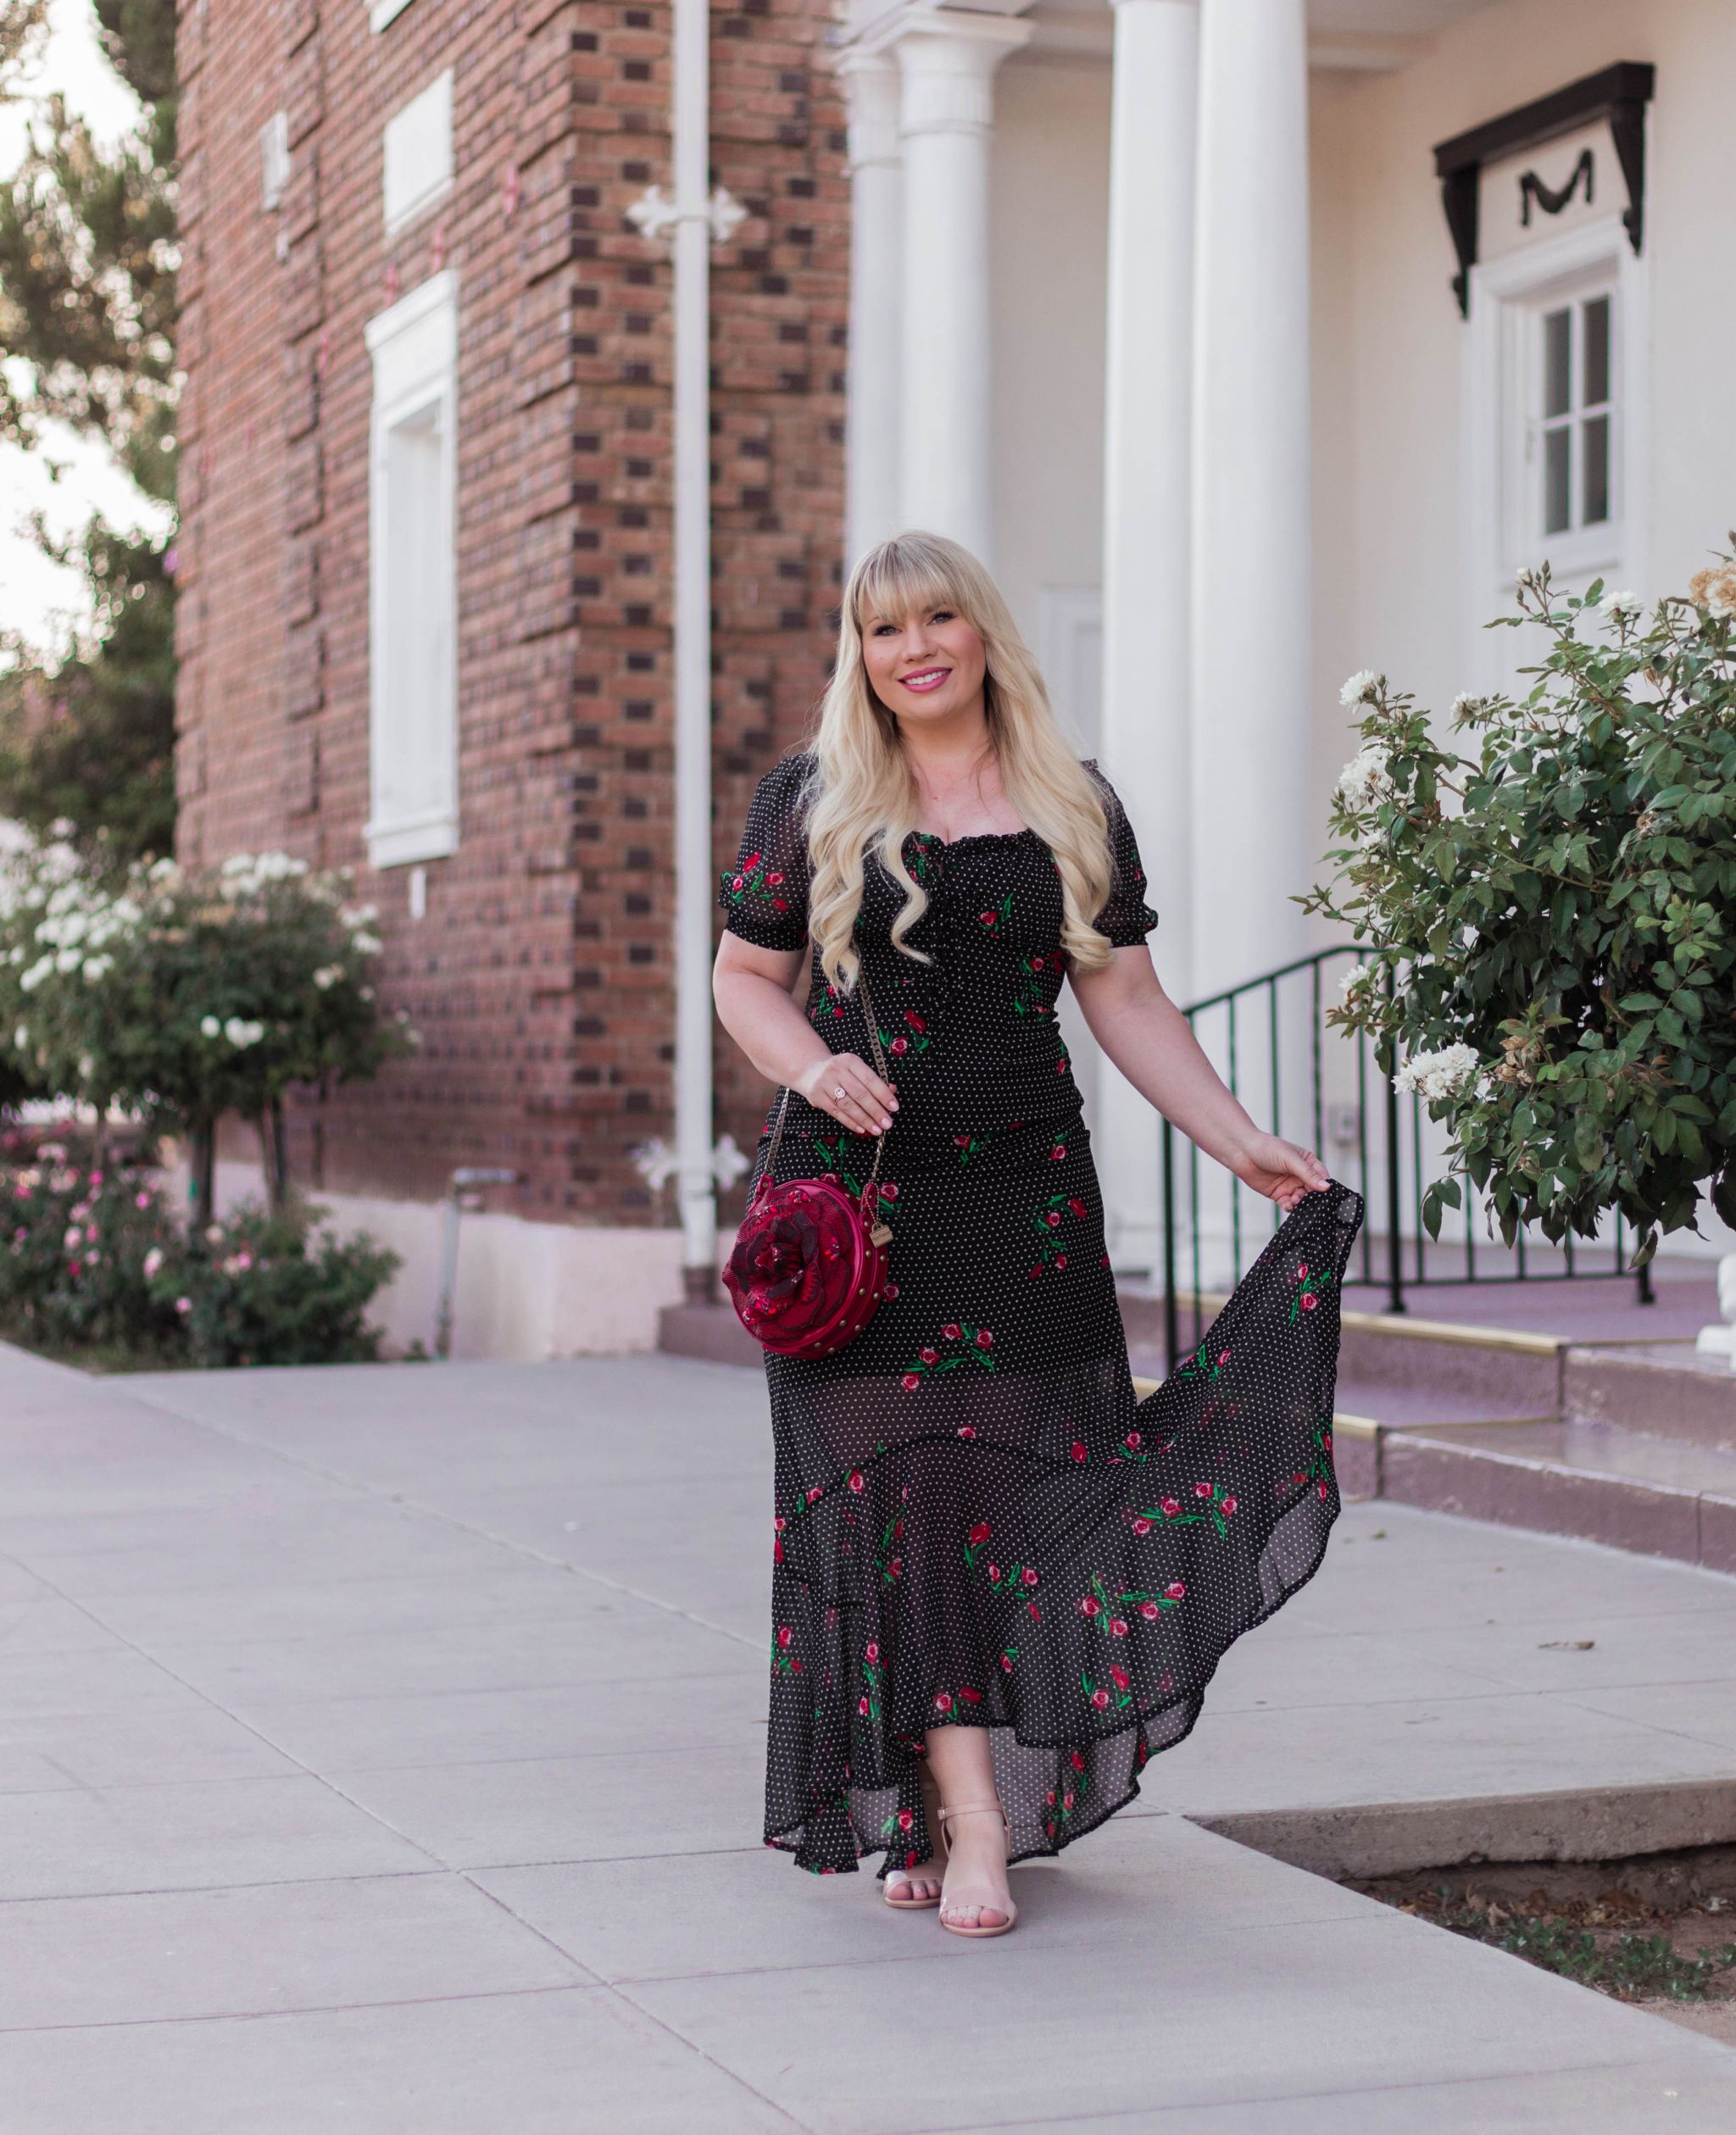 Elizabeth Hugen of Lizzie in Lace styles a beautiful Disney inspired handbag with a black polka dot and rose dress.